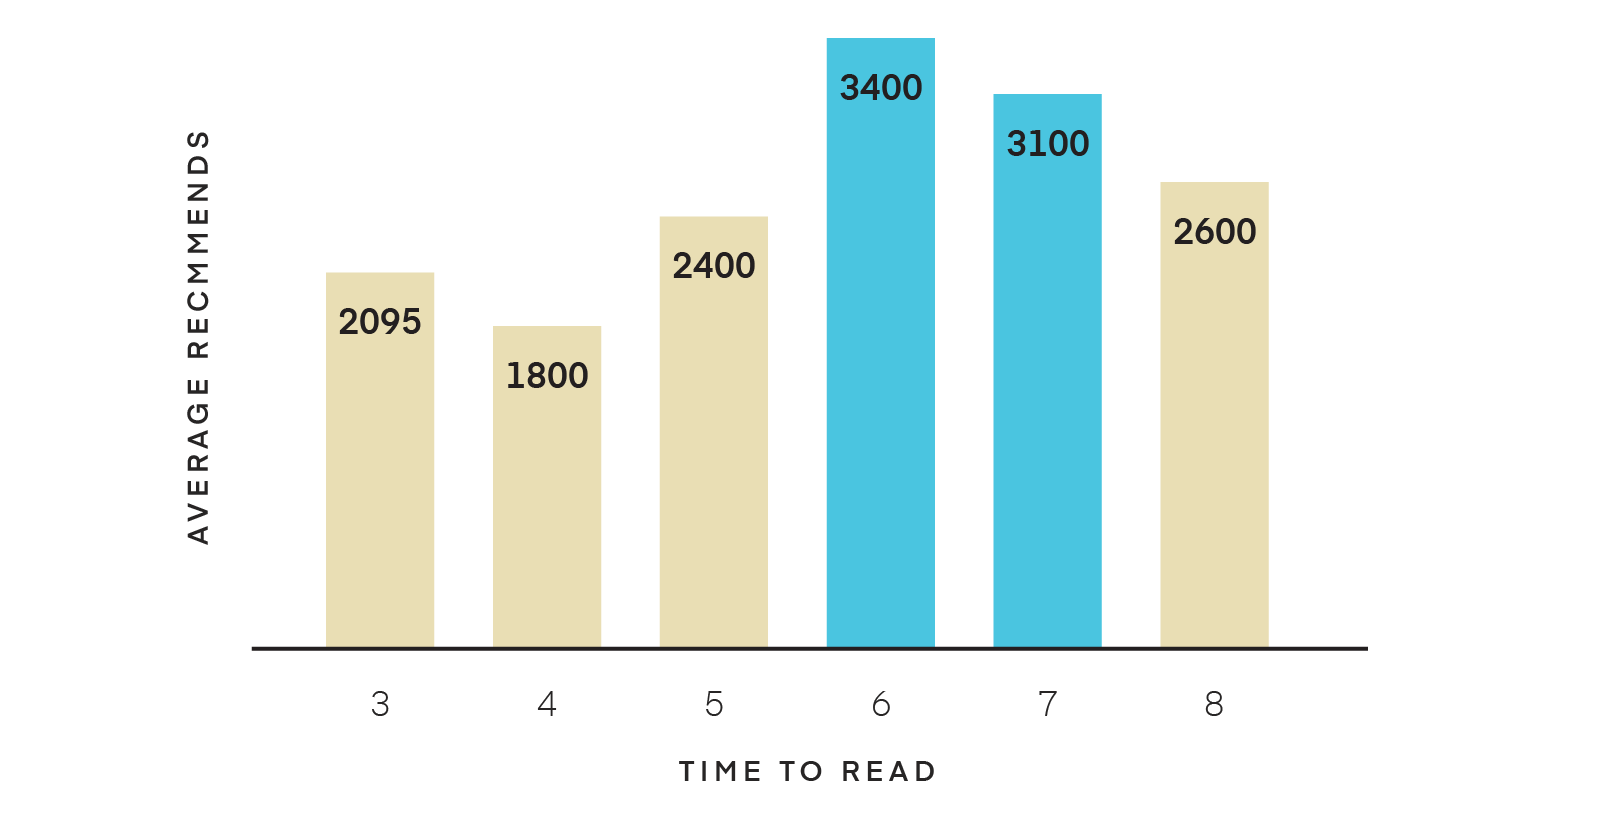 length of read chart